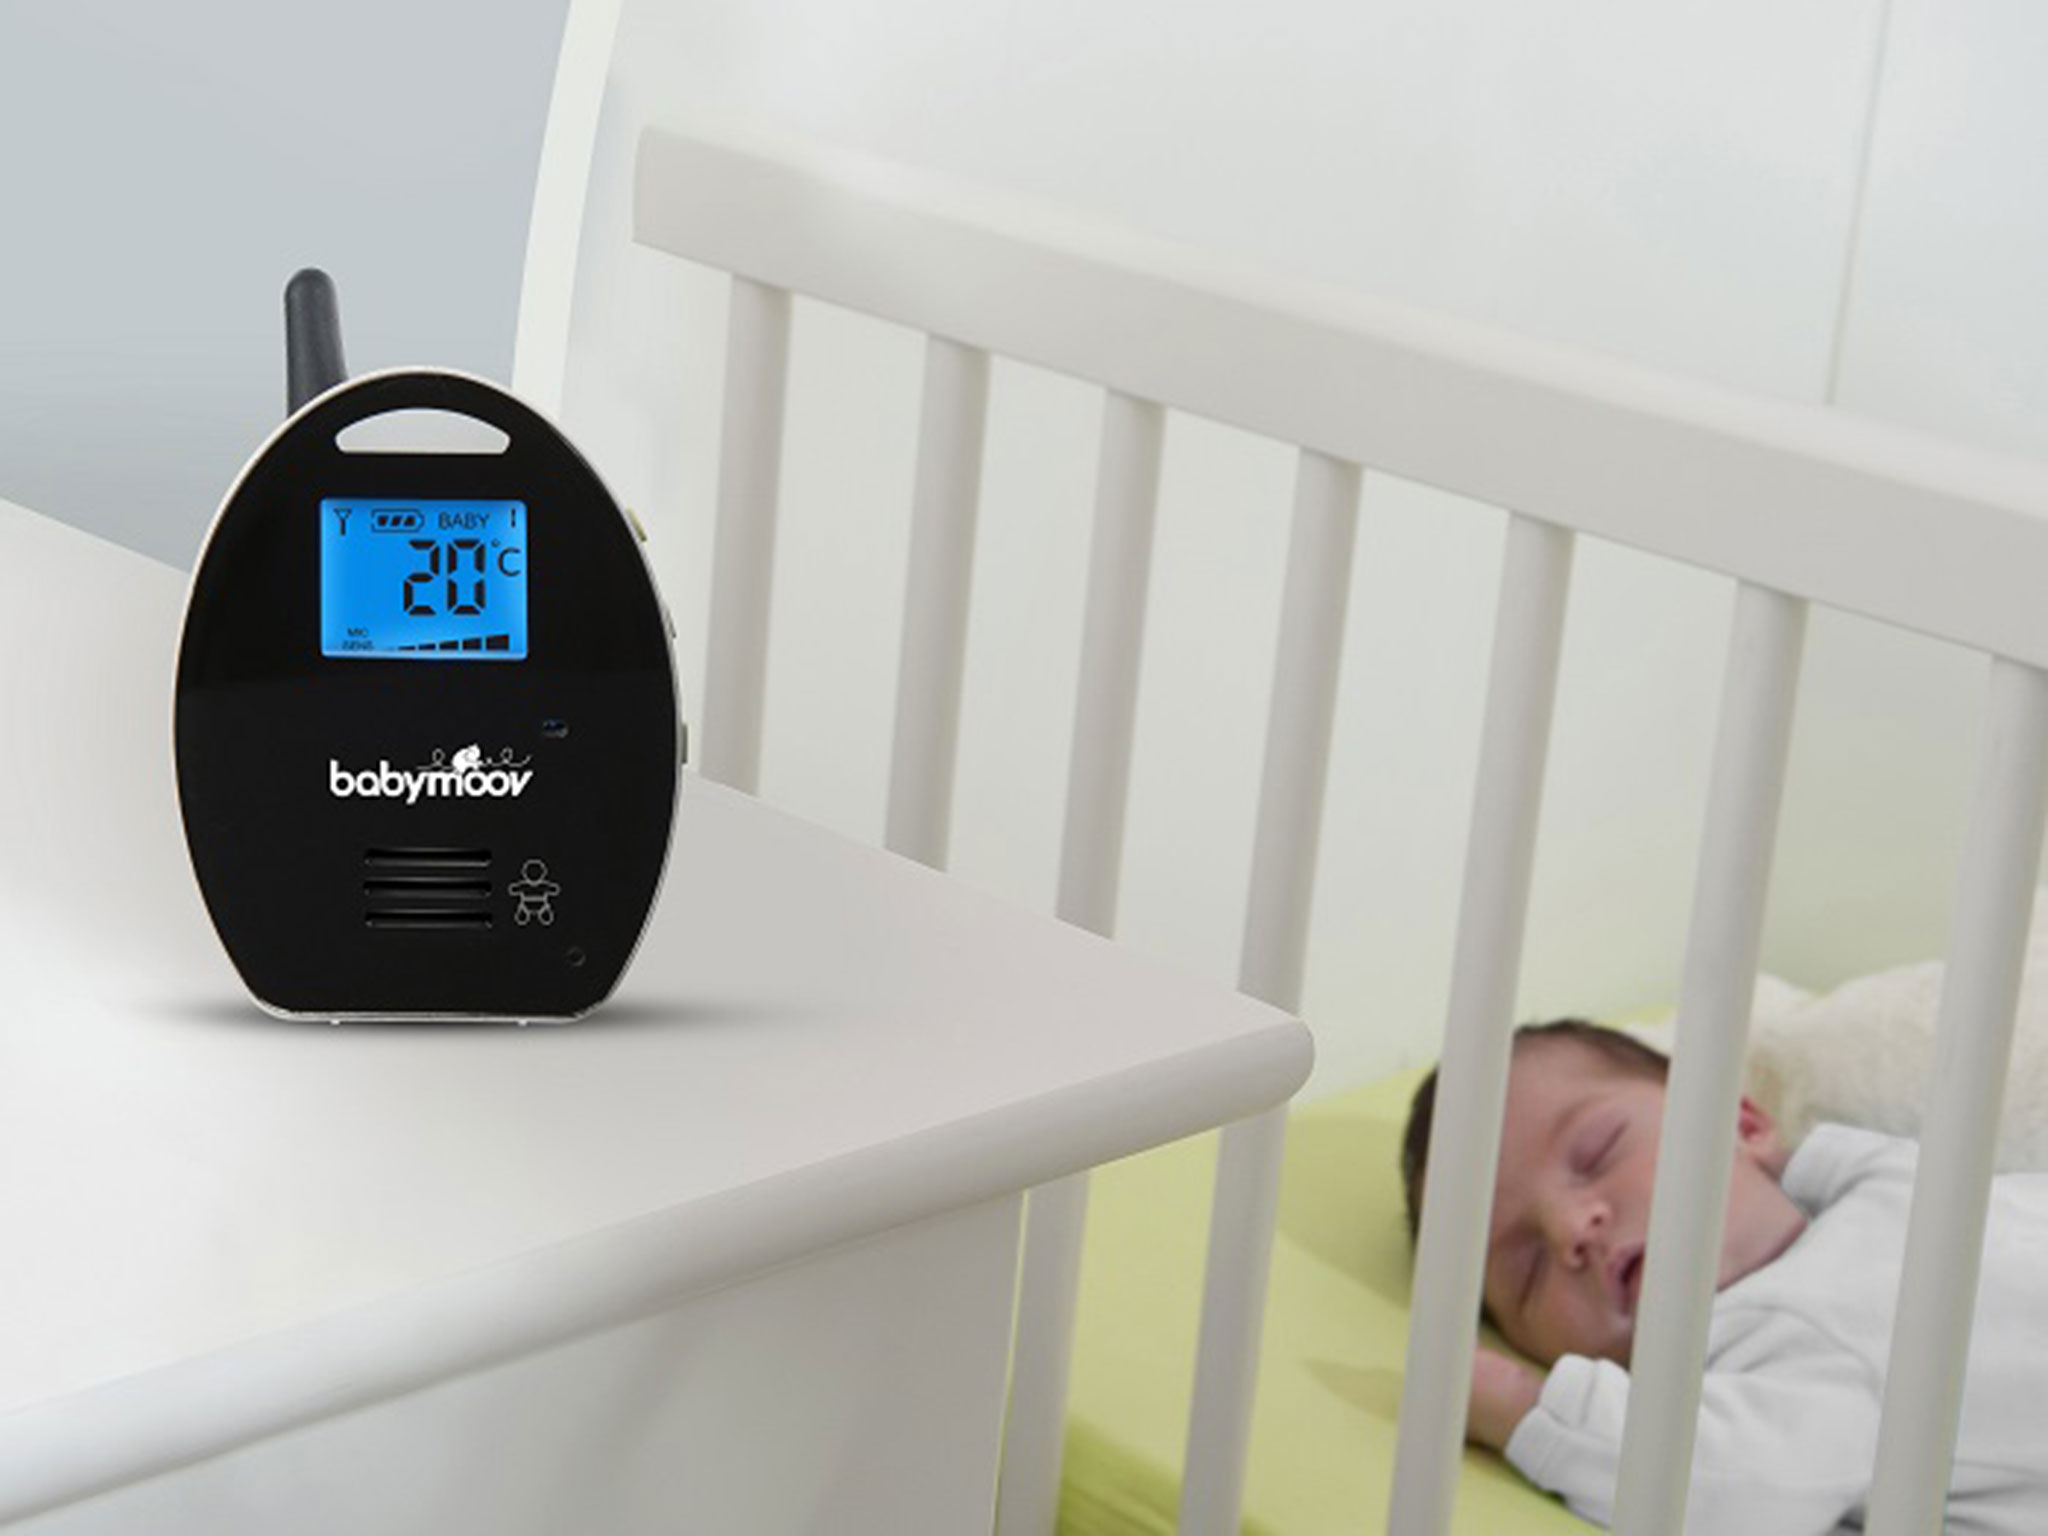 baby monitors security flaws search engine finds sleeping kids bgr. Black Bedroom Furniture Sets. Home Design Ideas